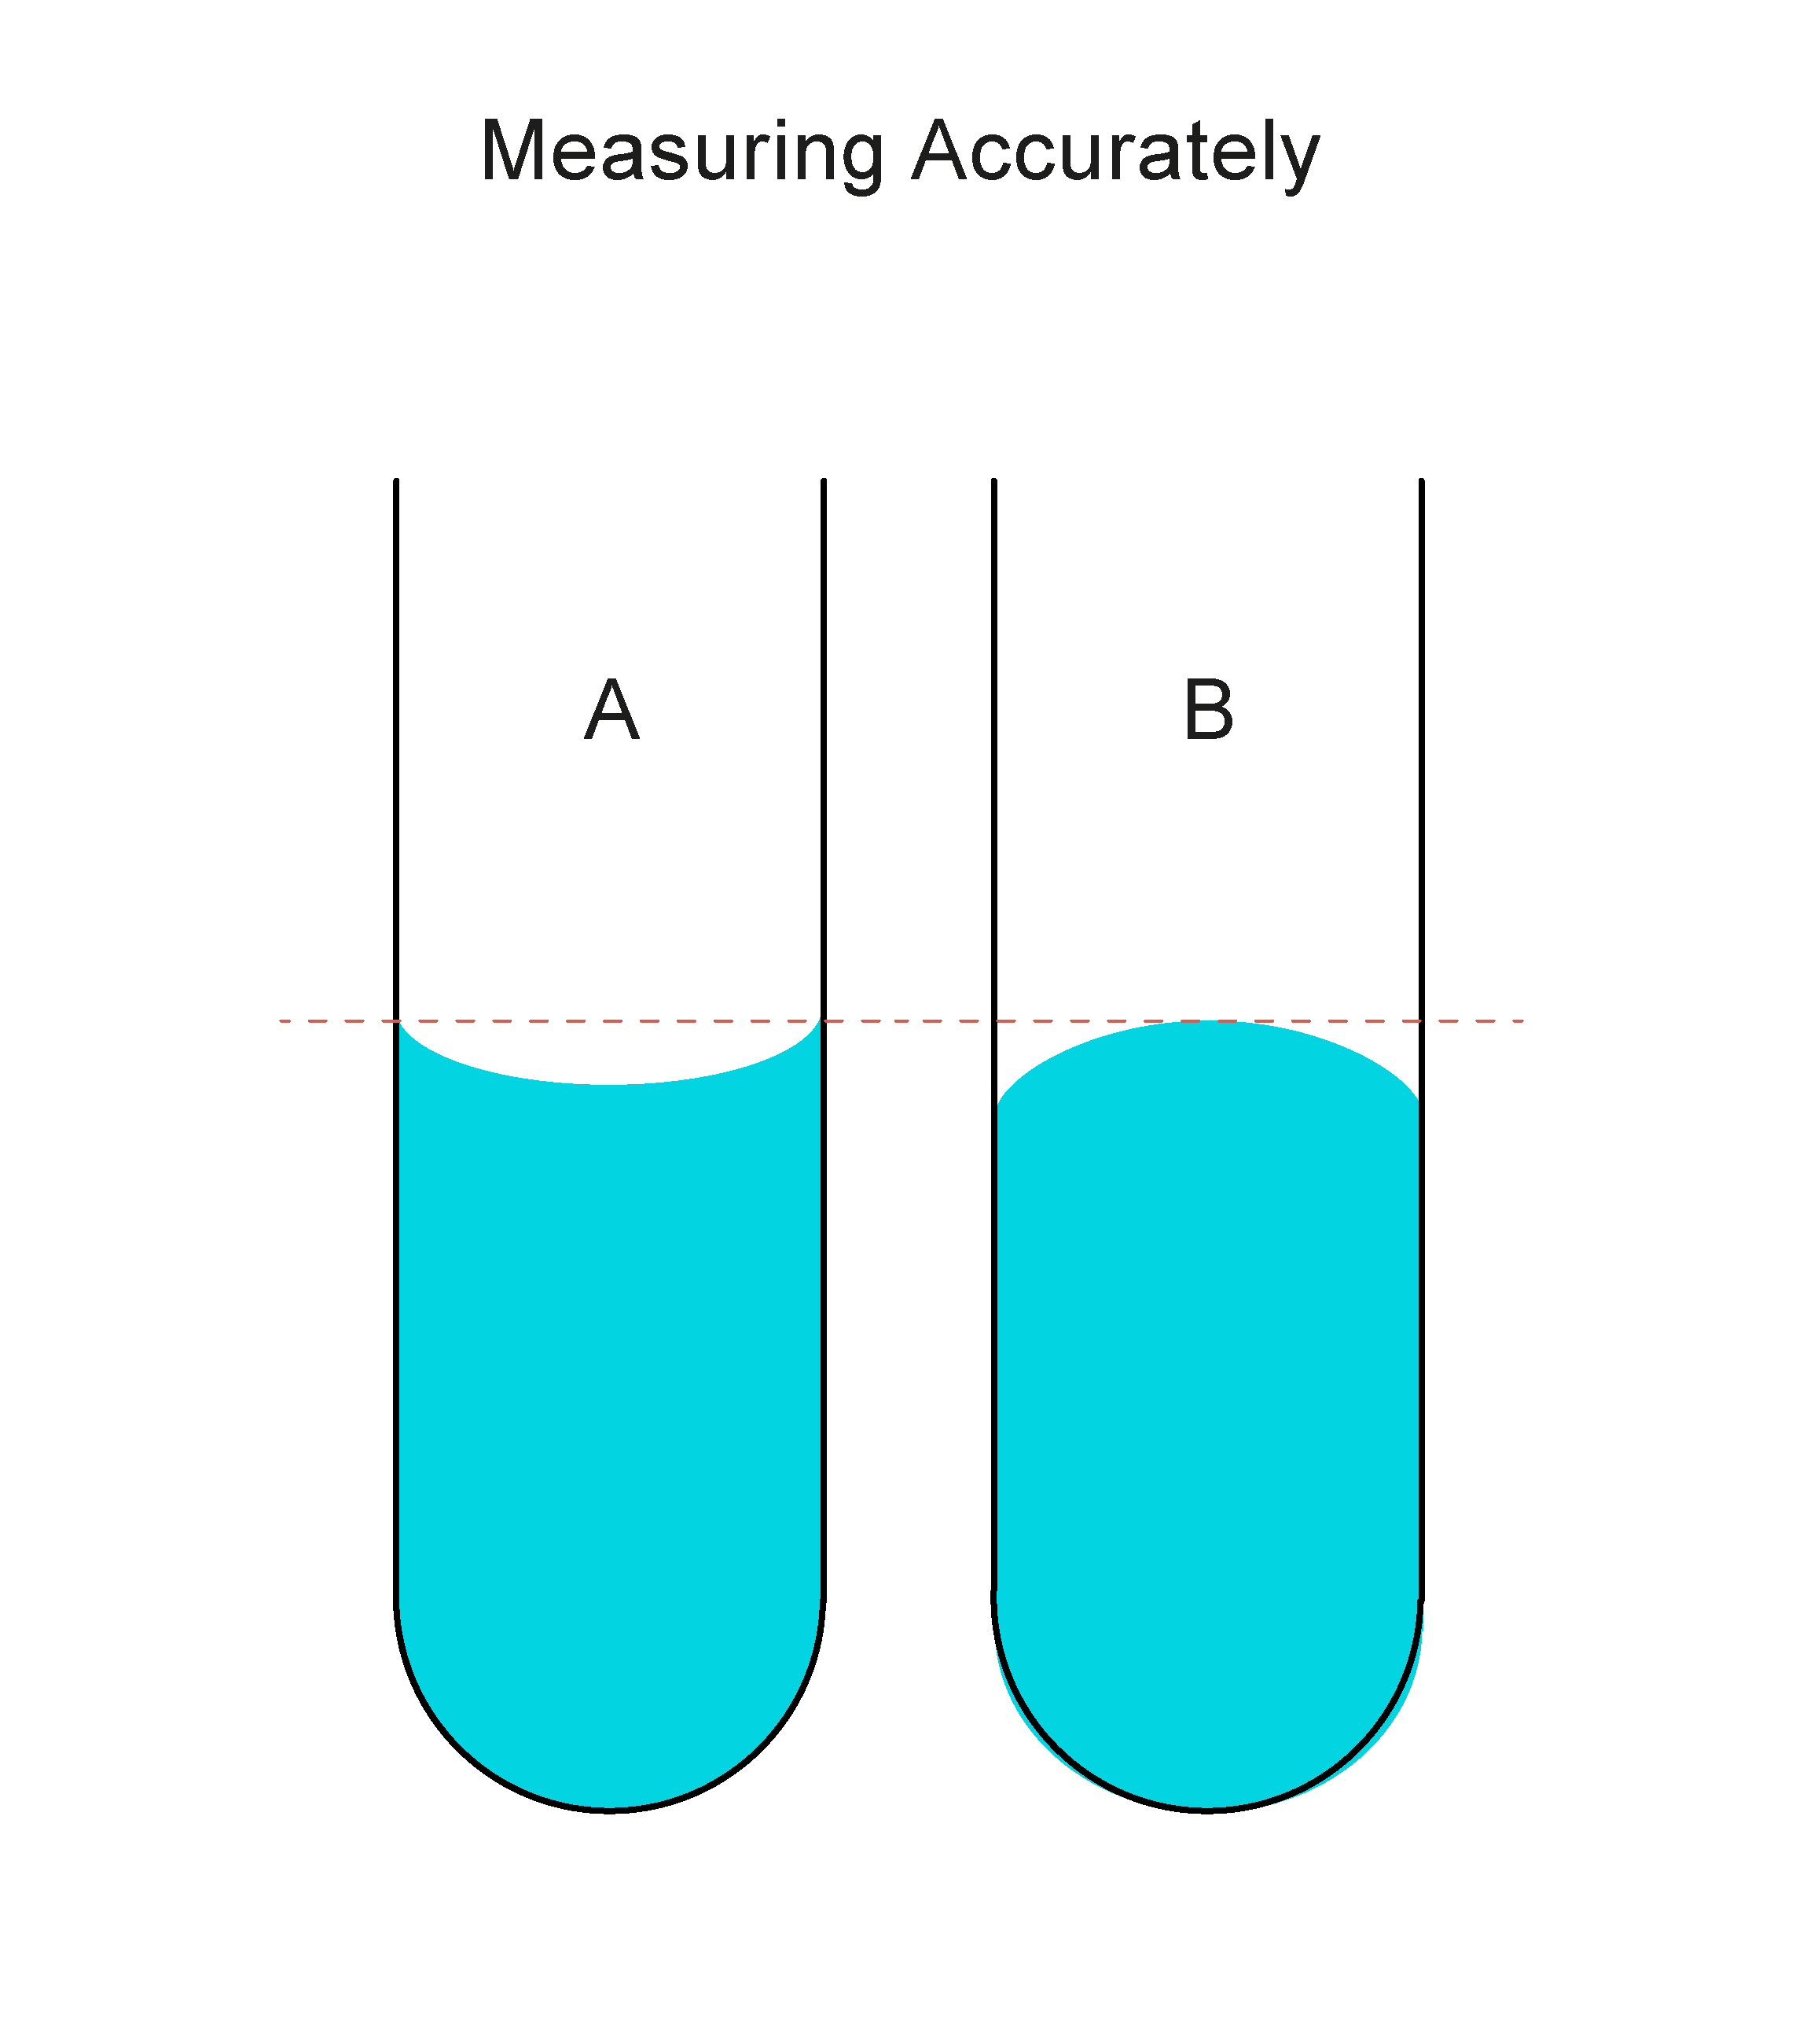 Measuring Accurately Worksheet - EdPlace